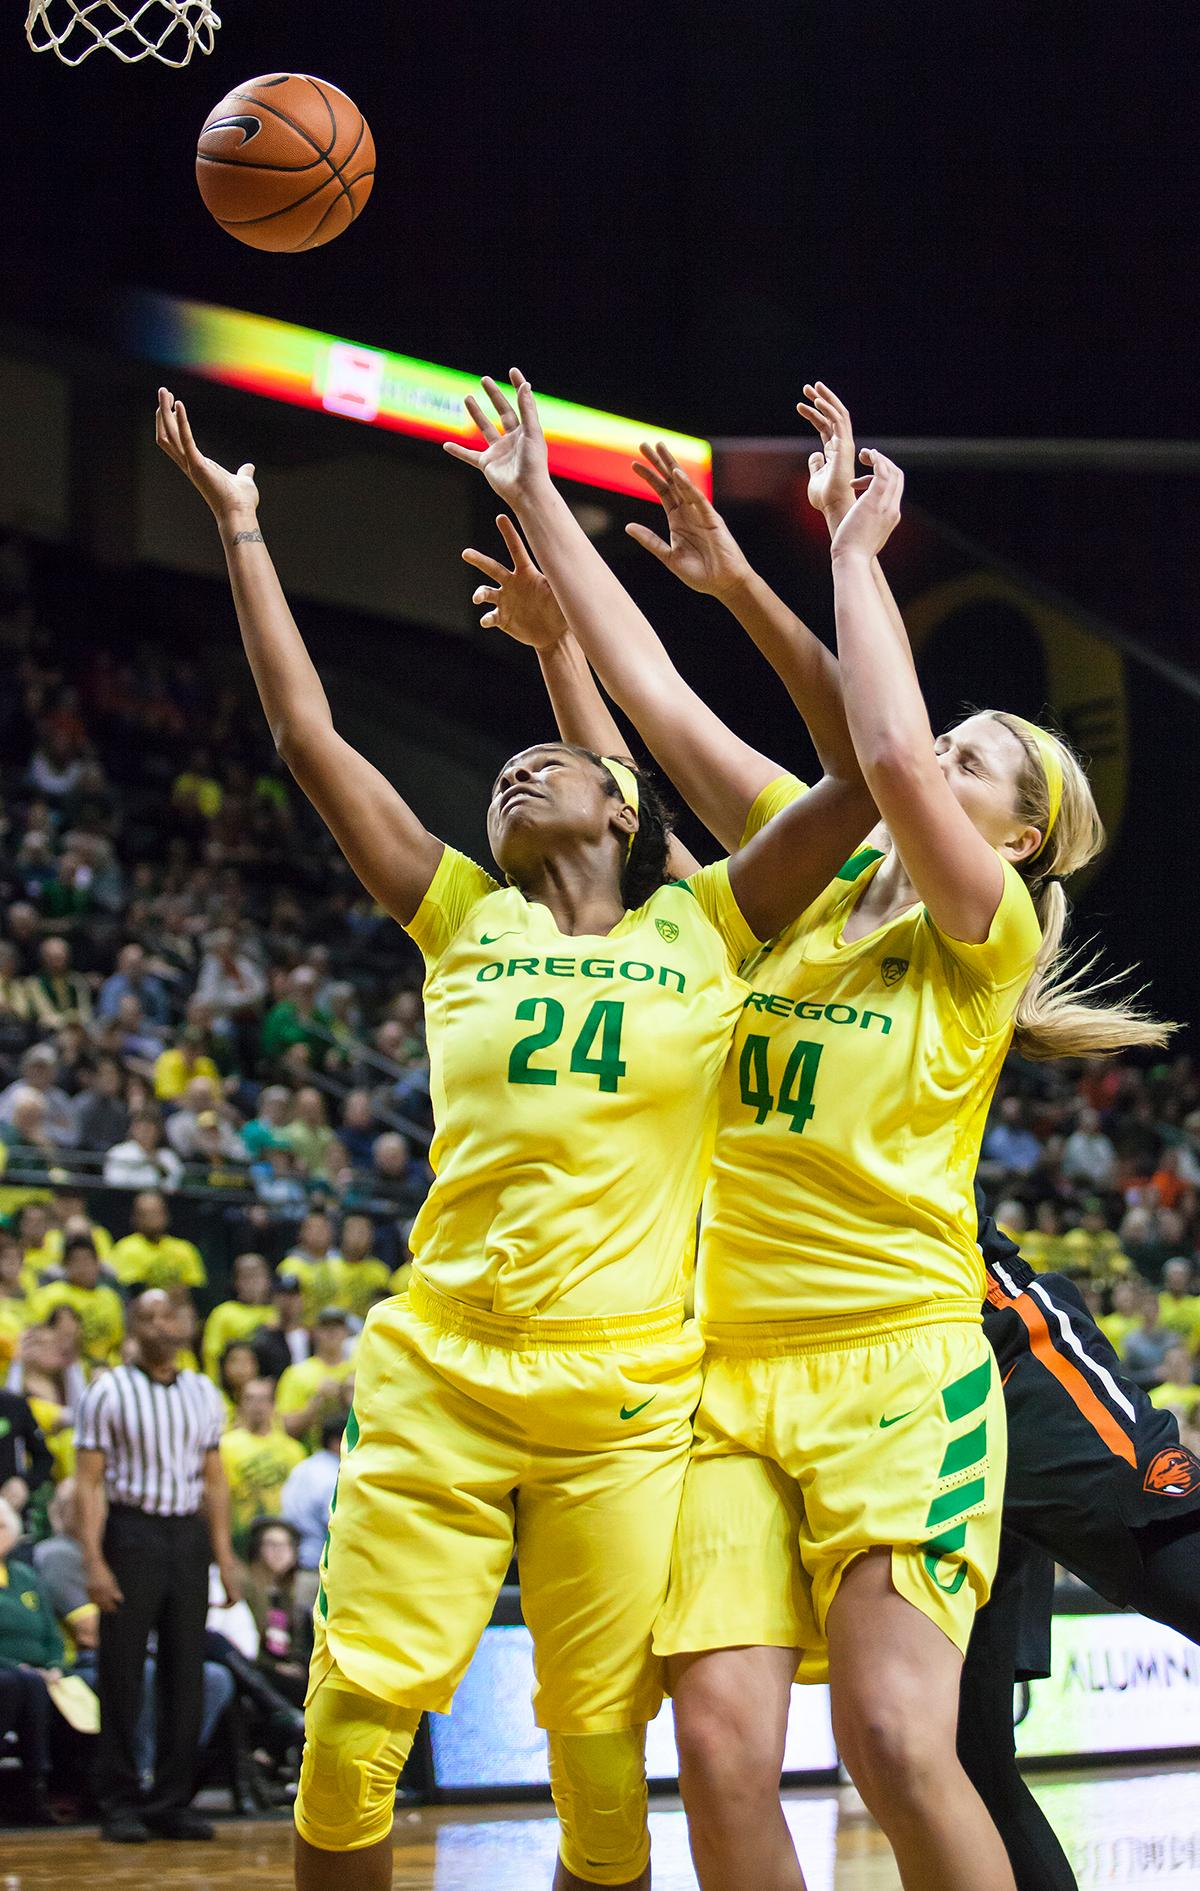 Oregon forwards Mallory McGwire (#44) and Ruthy Hebard (#24) reach out to catch a rebounded shot. The Oregon Ducks lost 40 to 43 against the Oregon State Beavers after a tightly matched 4th quarter. Photo by Ben Lonergan, Oregon News Lab